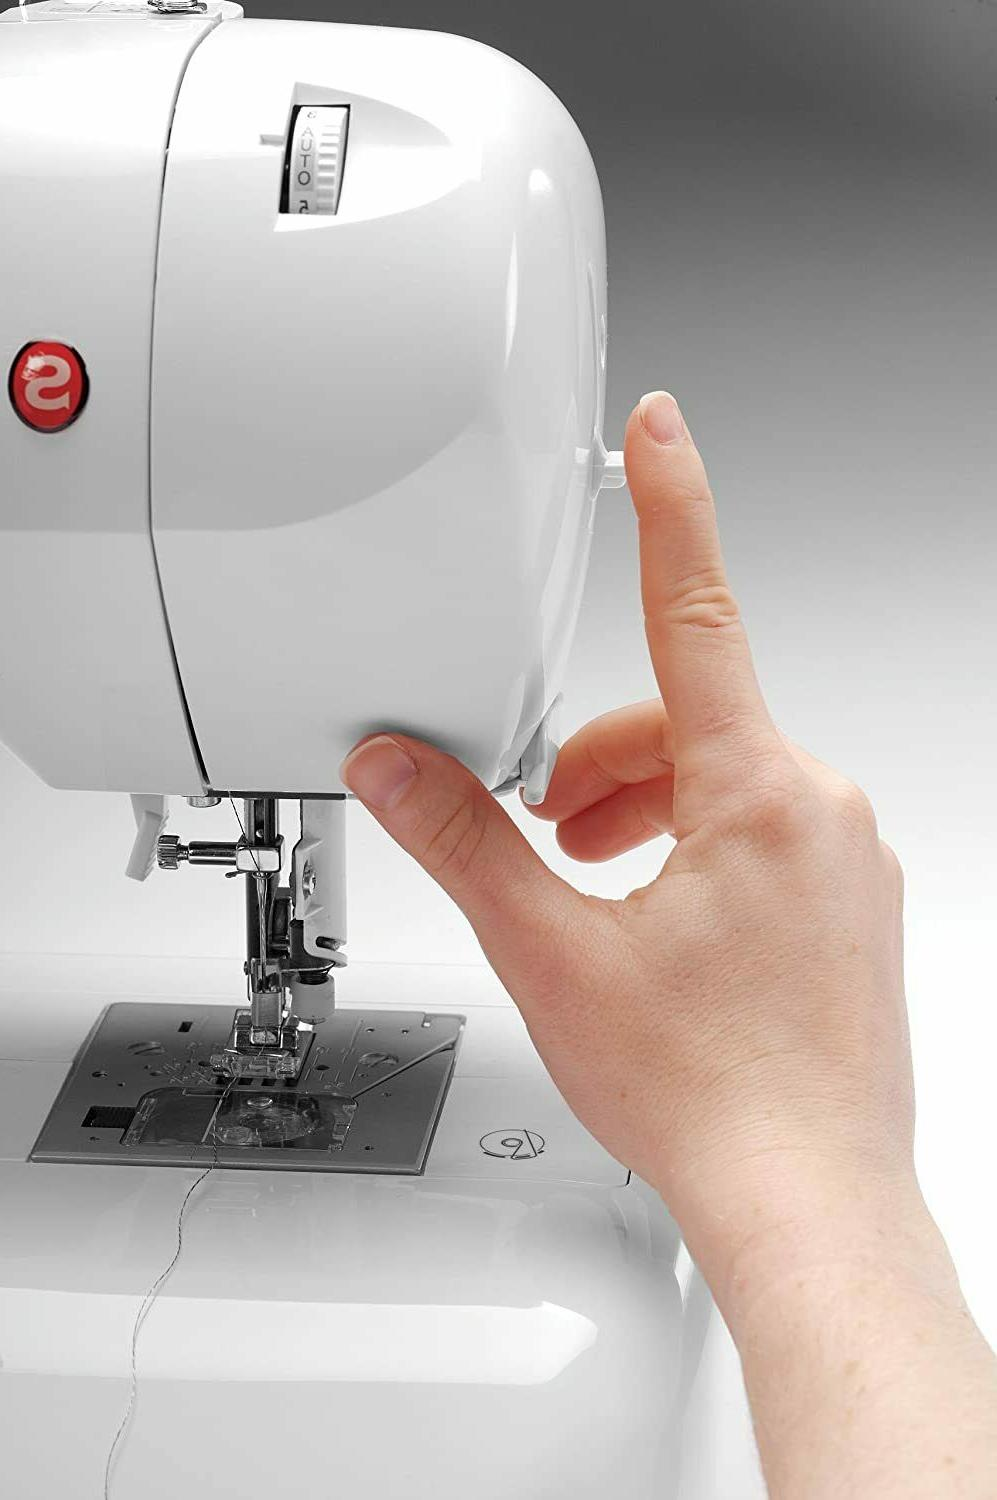 Singer 8763 Sewing Machine